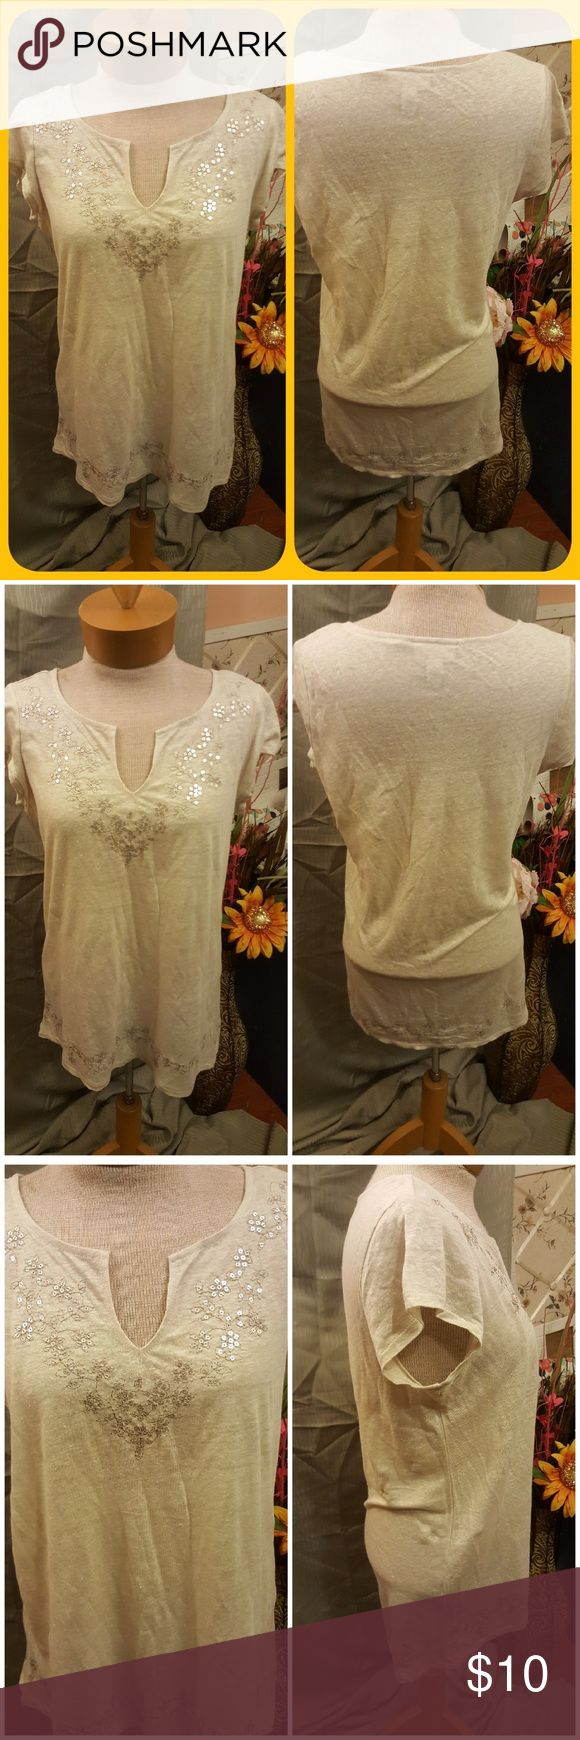 Kenar - Womens Top •Kenar - Womens Top •size Small •Used •Approx 25.5 inches Long (front)                 28 inches Long ( Back)                 36 inches Bust 100%Linen Cream Color w/ Sequins Kenar Tops Blouses